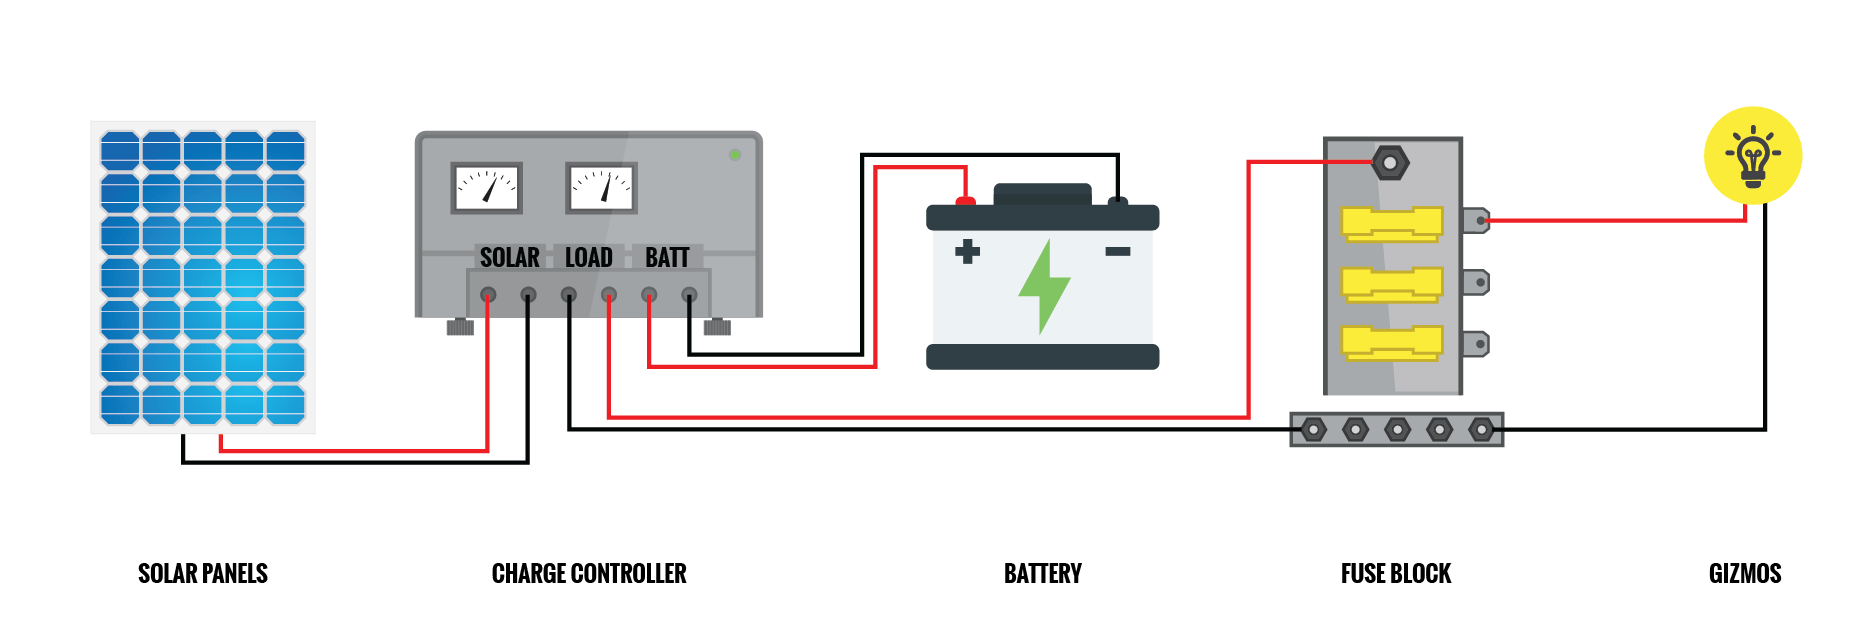 the best way to wire a solar charge controller in a camper van or rv